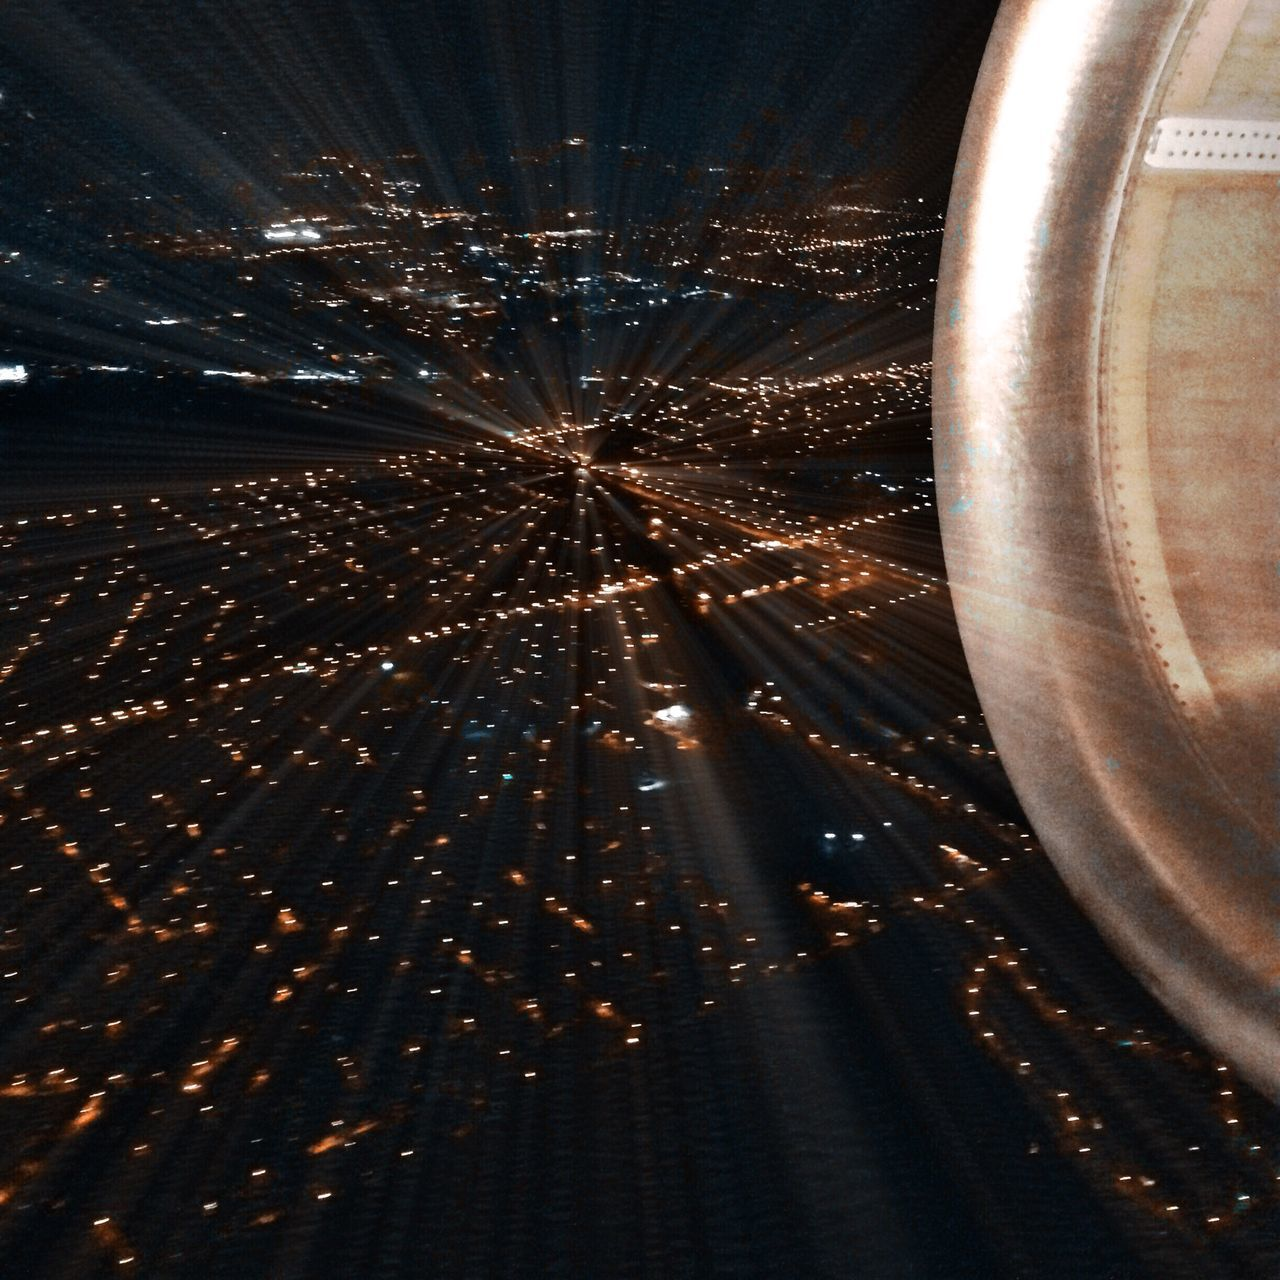 illuminated, night, no people, air vehicle, indoors, airplane, architecture, sky, city, cityscape, close-up